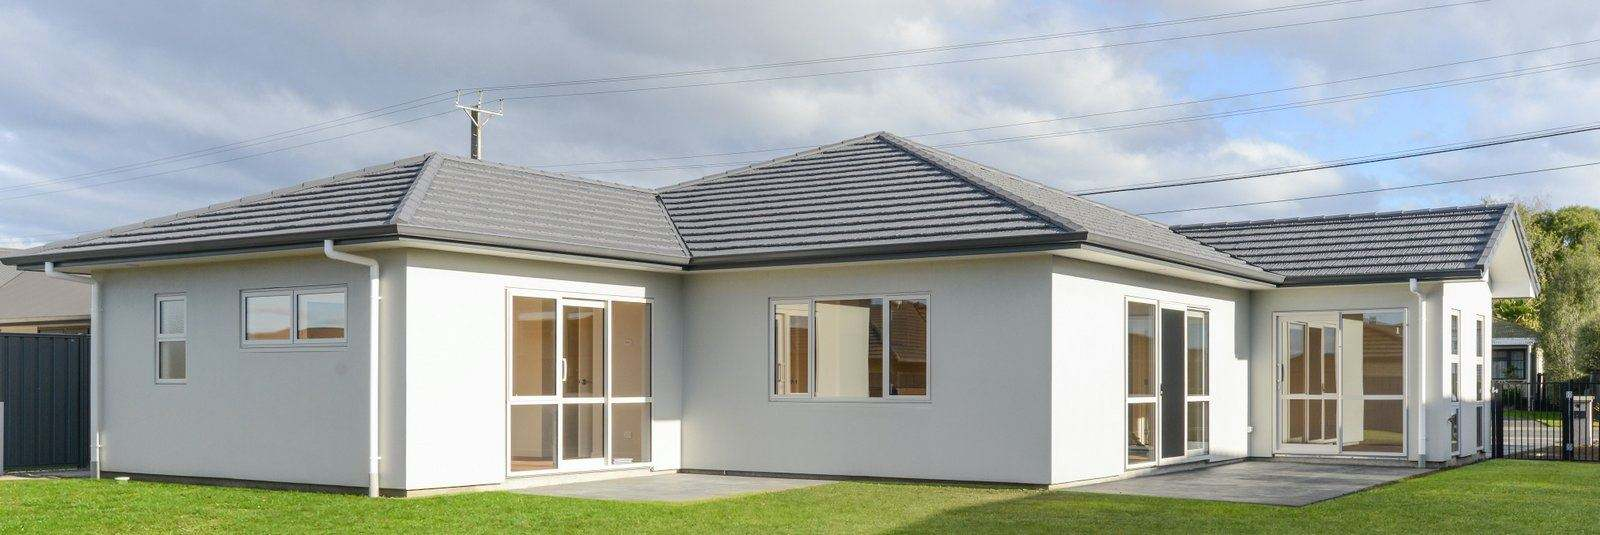 Waipukurau and Surrounds 3房 House and Land Packages Here!